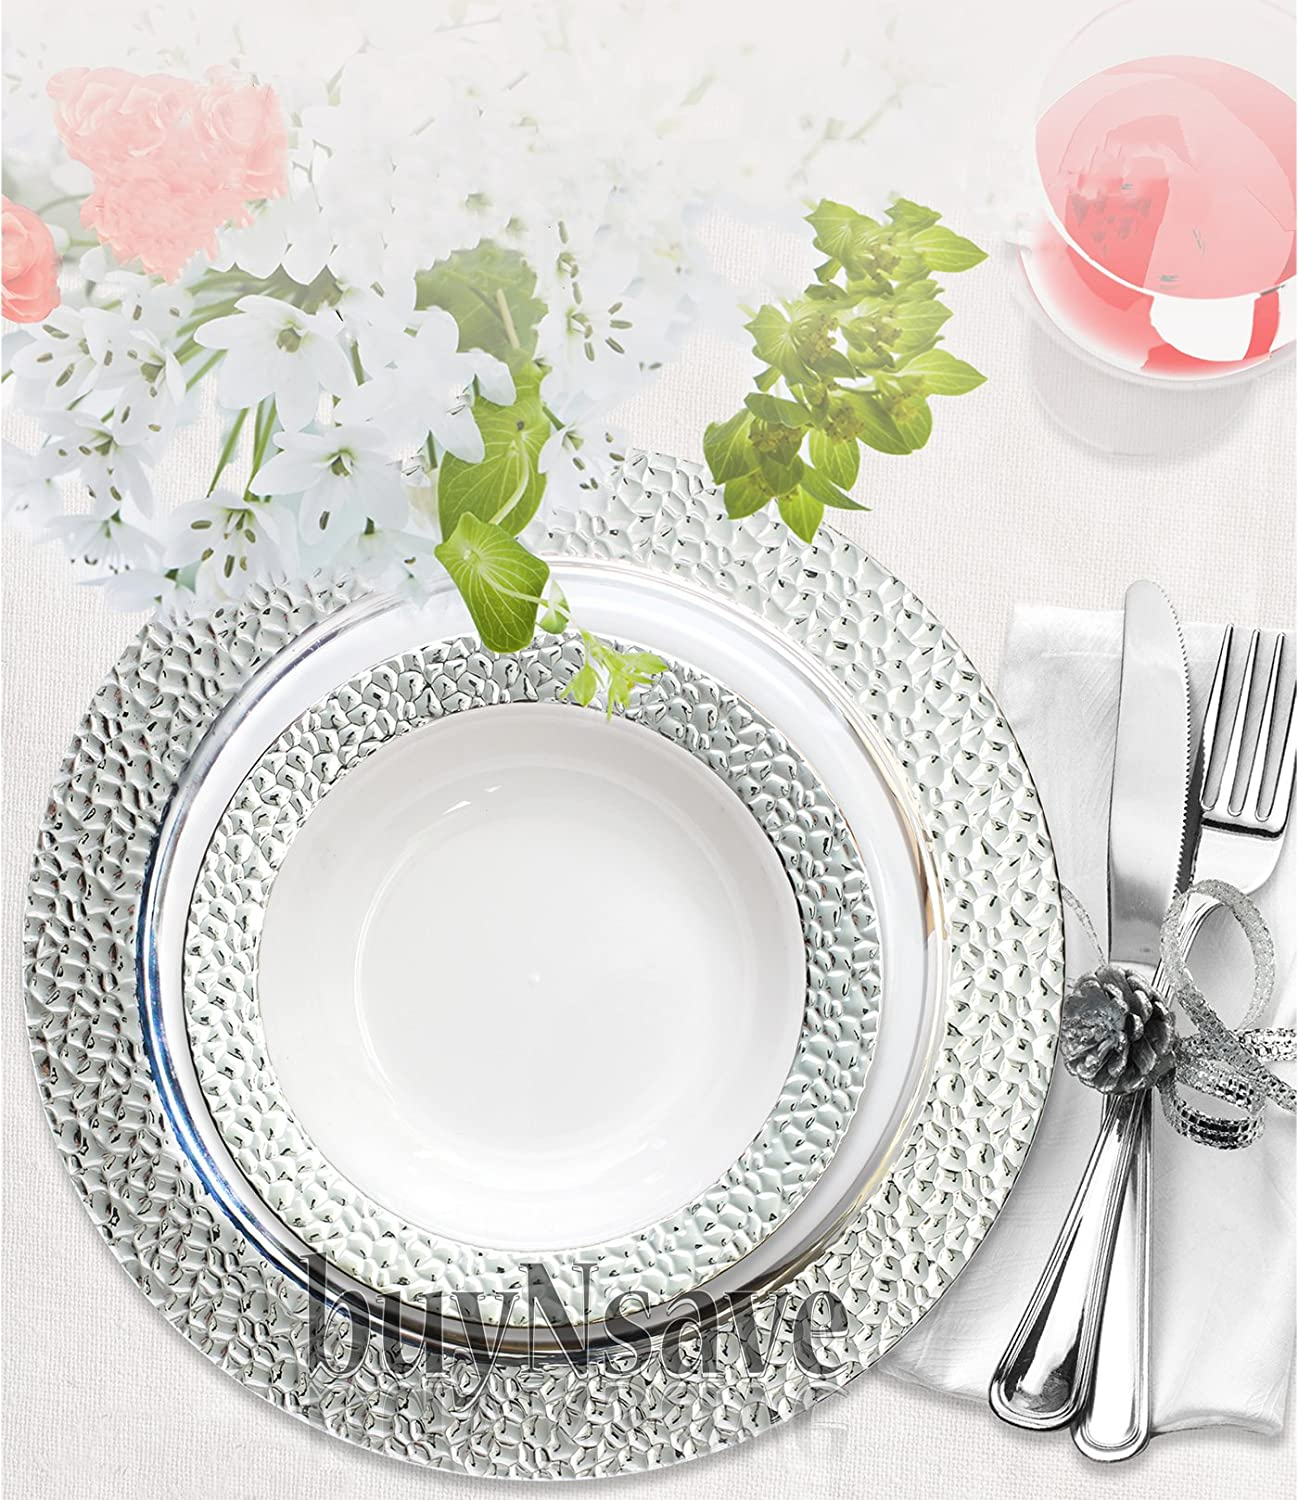 Amazon.com buyNsave Clear with Silver Heavyweight Plastic Elegant Disposable Plates Wedding Party Elegant Dinnerware Hammered Collection (40 ...  sc 1 st  Amazon.com & Amazon.com: buyNsave Clear with Silver Heavyweight Plastic Elegant ...